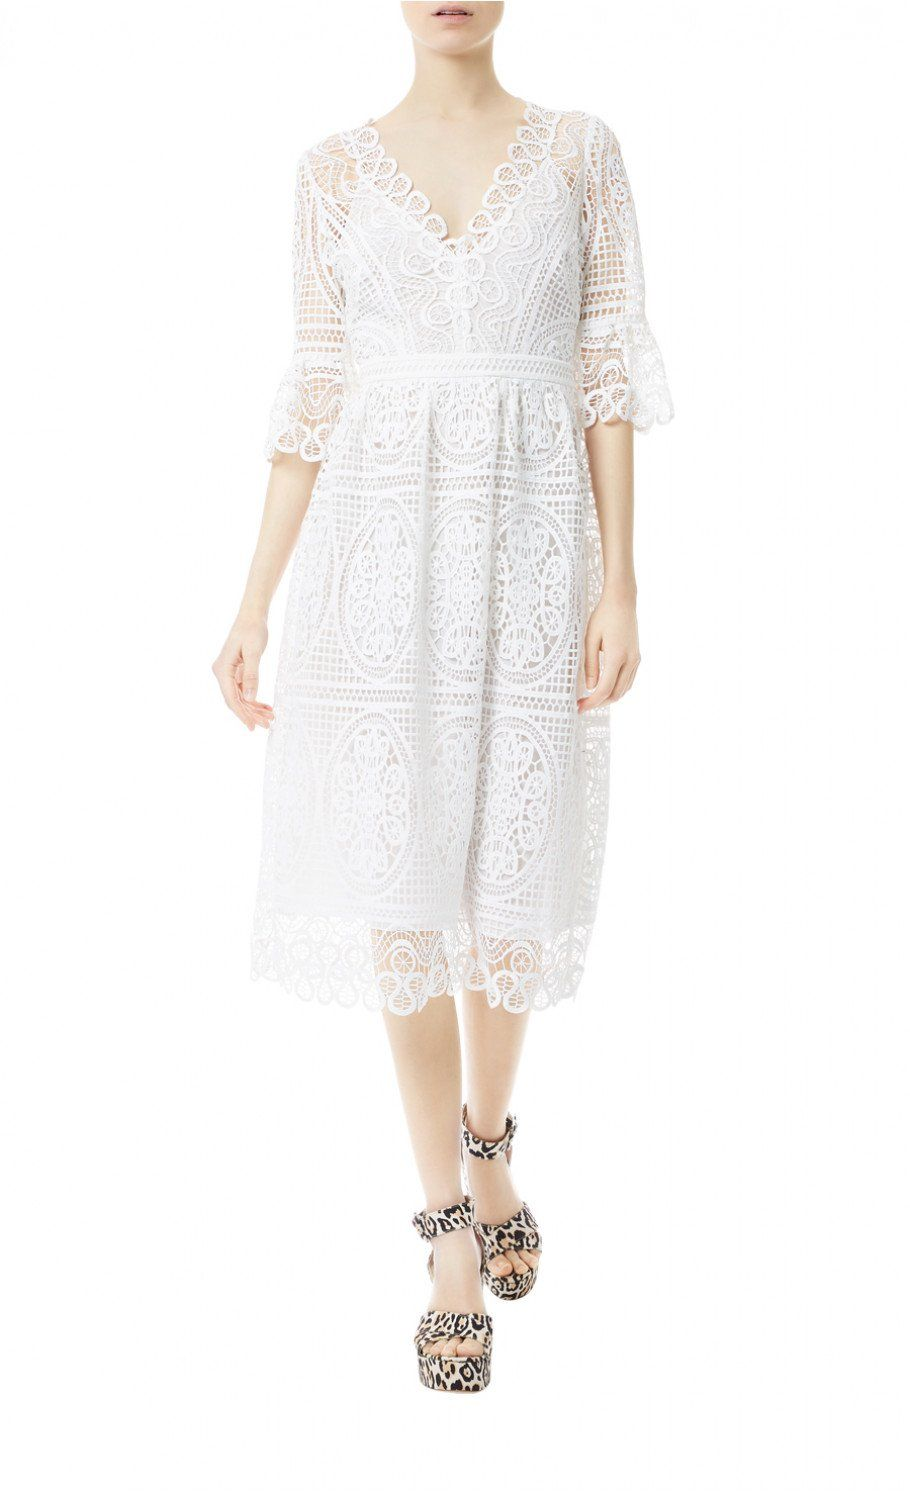 Titania Lace Sleeved Dress - Shaped from bold open macramé lace, the Titania Lace Sleeved Dress is an elegant warm-weather style underpinned by Temperley's signature bohemian undercurrent. With flared sleeves, this white summer dress features a deep v-neck, cinched-in waist and falls to a midi-hem.